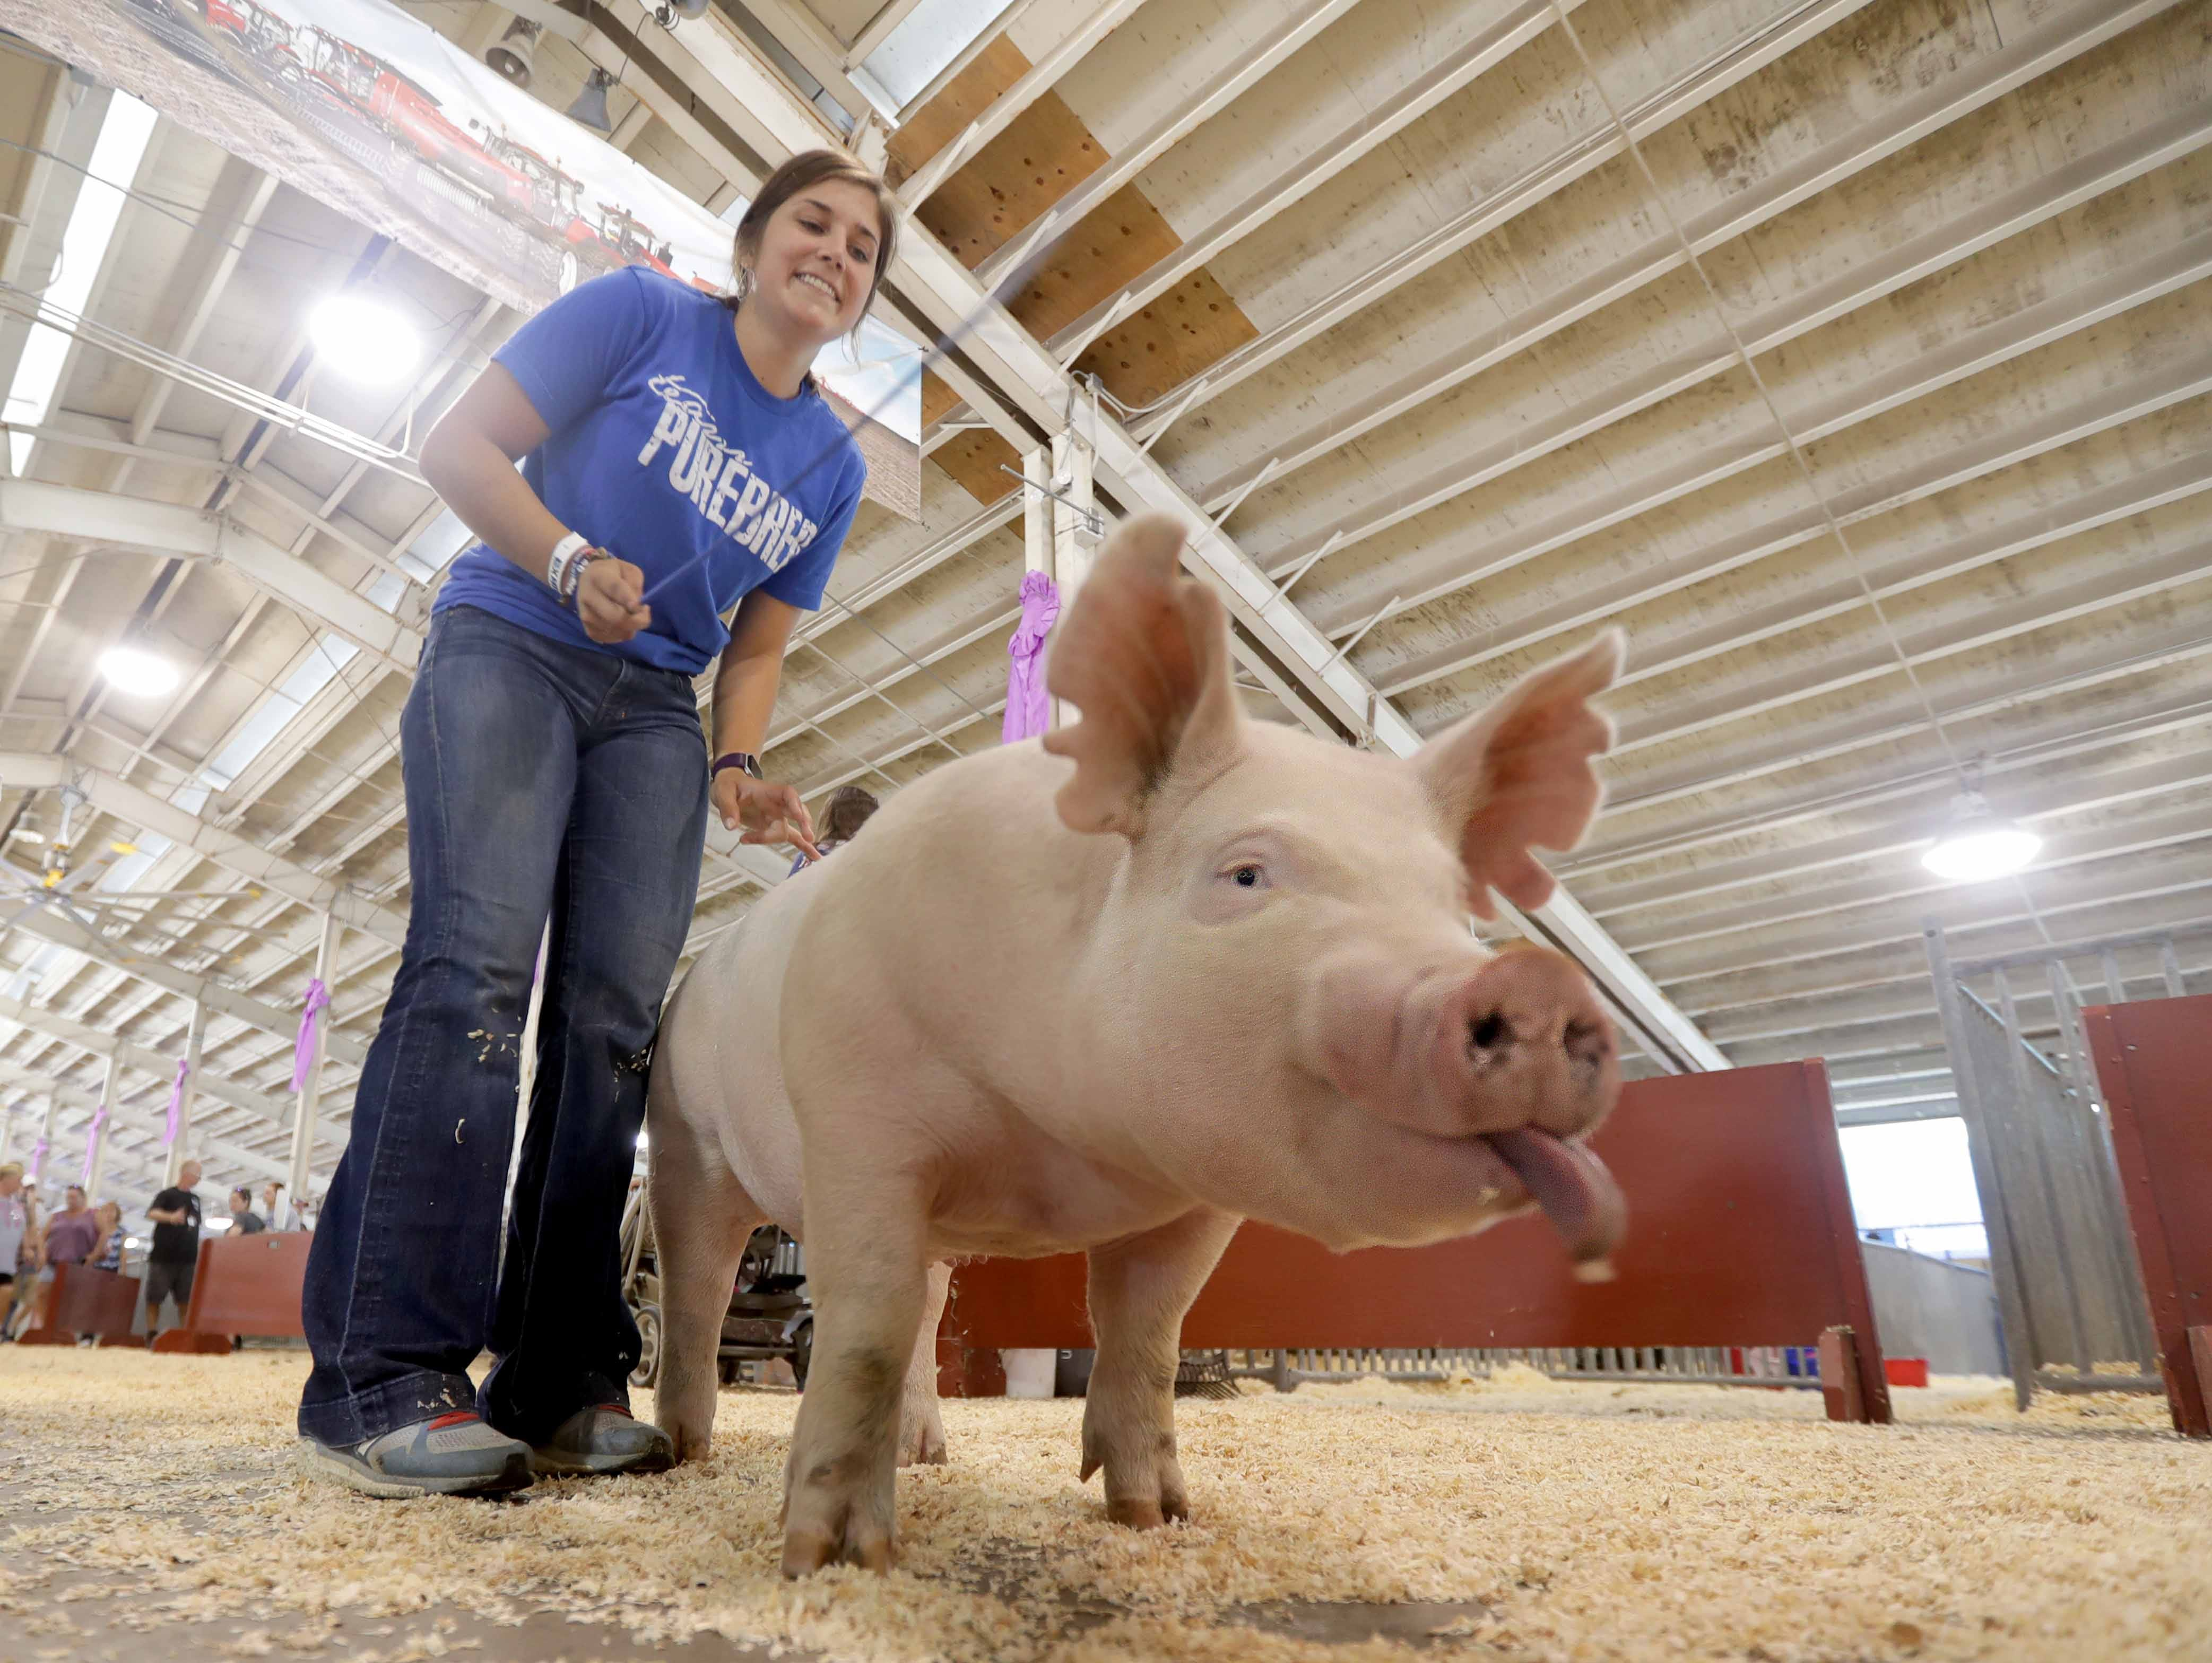 W-ANIMALS - Elysa Doherty, 19, with the Wisconsin Show Pig Association WSPA, walks her pig to the show area.   Youth from across the area from various 4-H groups and agriculture organizations, descended on the Wisconsin State Fair grounds in West Allis to ready their animals for shows. The opening of the 167th Wisconsin State Fair took place at the Wisconsin State Fair grounds in West Allis on Thursday, August 2, 2018. The fair runs through Sunday, August 12  -  Photo by Mike De Sisti / Milwaukee Journal Sentinel